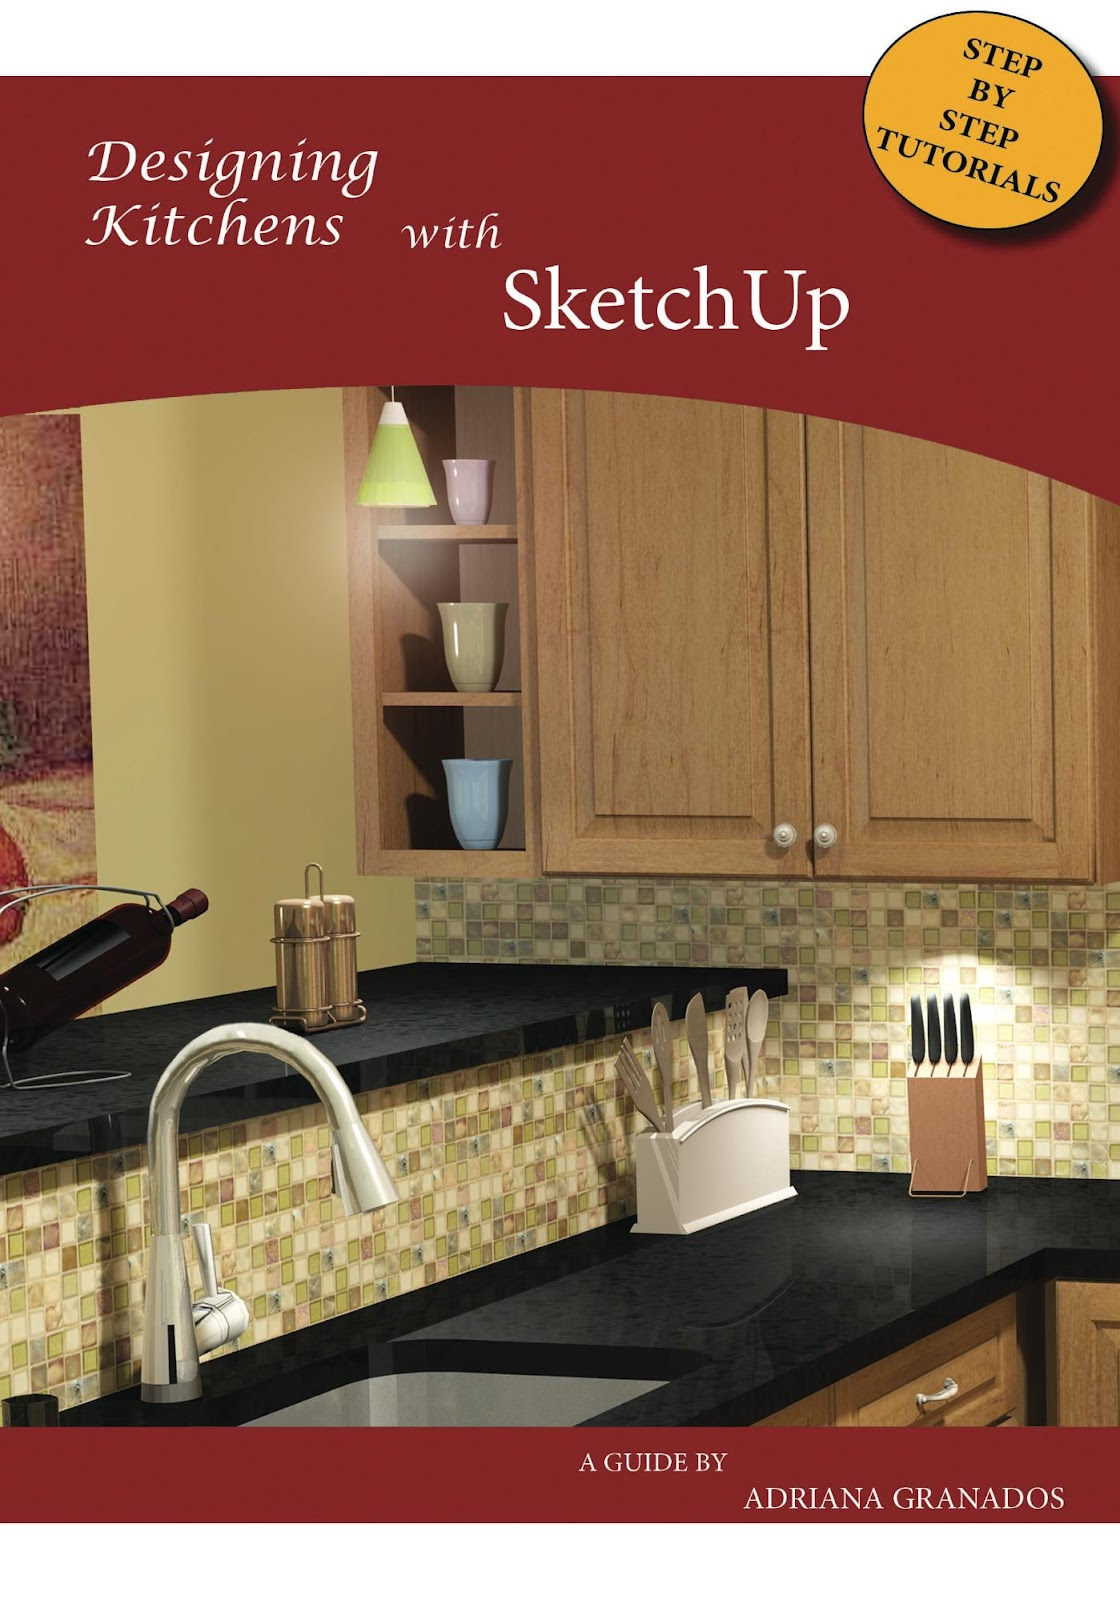 Wonderful Designing Kitchens With SketchUp, A New Book For Interior Designers Part 13